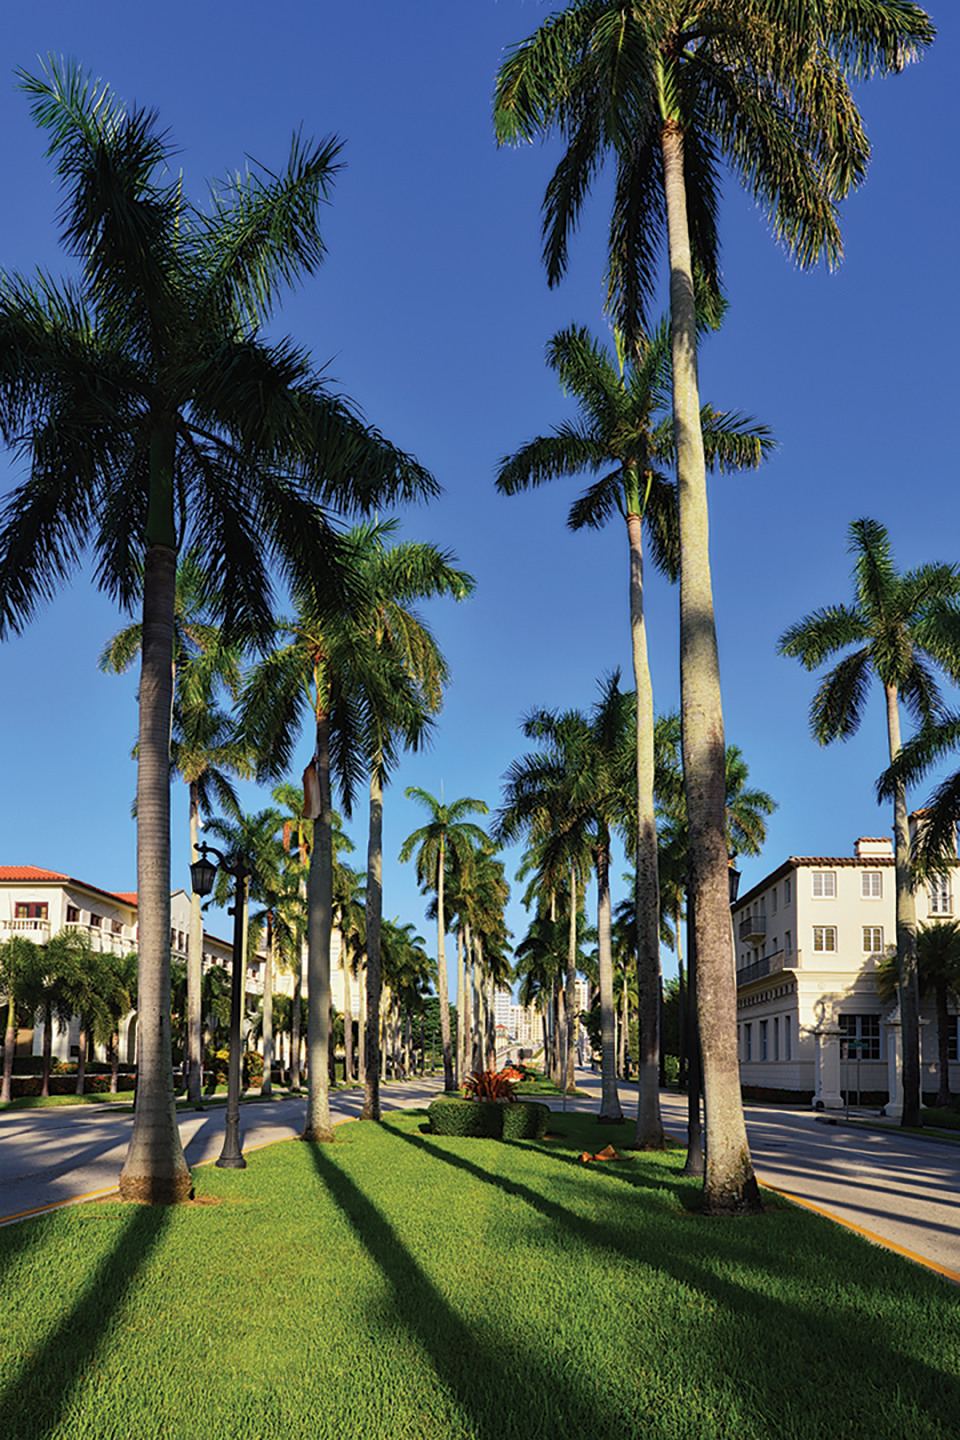 Beautiful palm trees at famous Royal Palm Way, Palm Beach, Florida, United States.